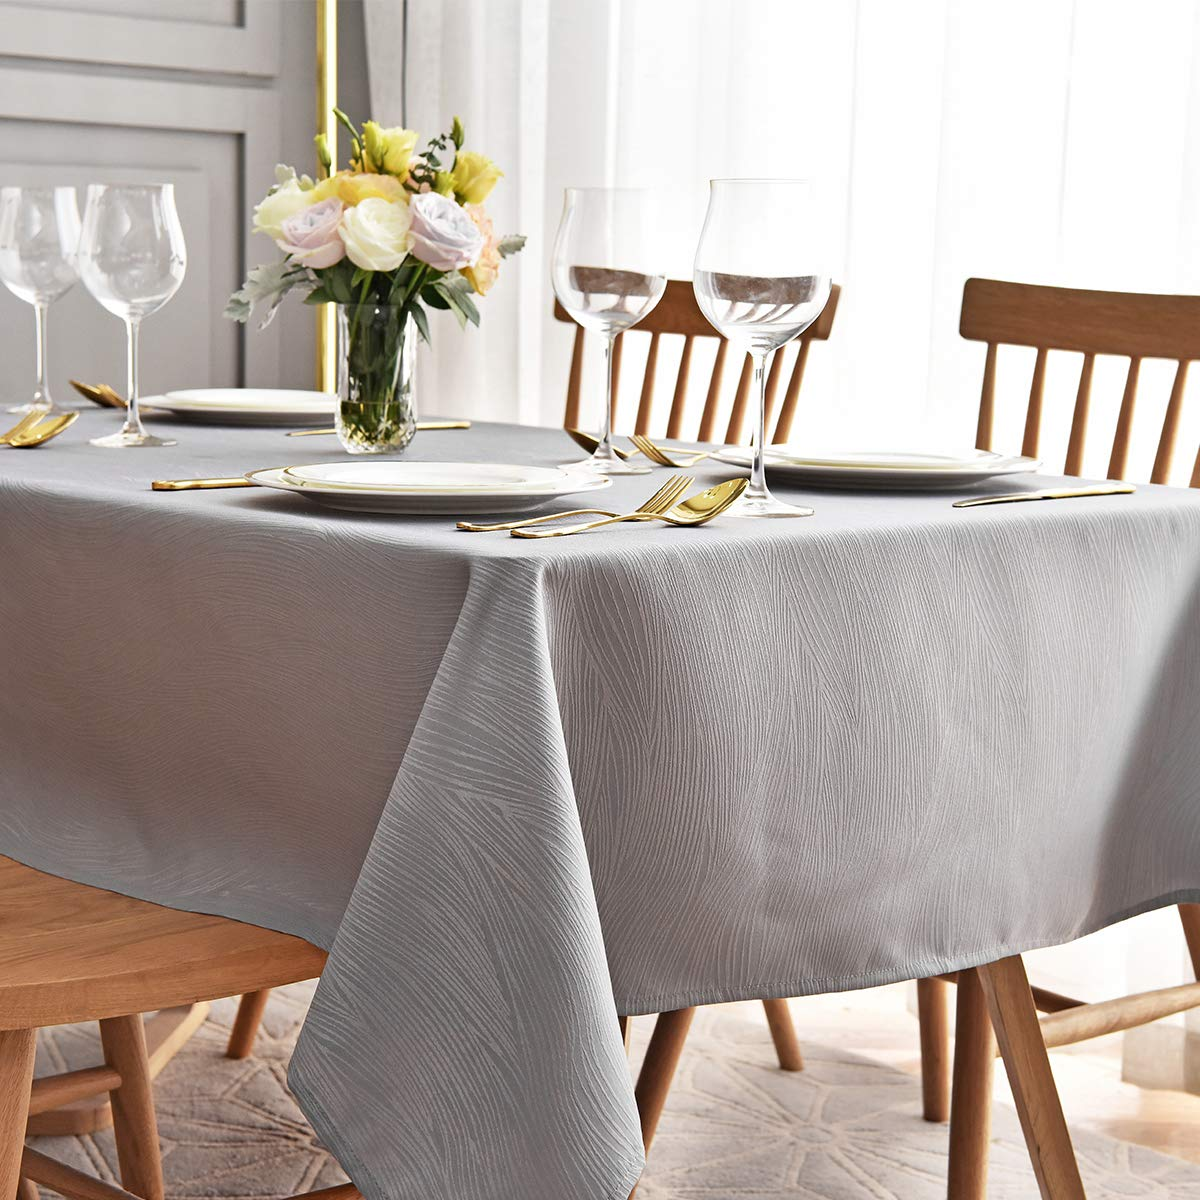 maxmill Jacquard Tablecloth Swirl Design Spillproof Wrinkle Free Oil Resistant Heavy Weight Soft Table Cloth Decorative Fabric Table Cover for Outdoor and Indoor Use Oblong 60 x 120 Inch Light Gray